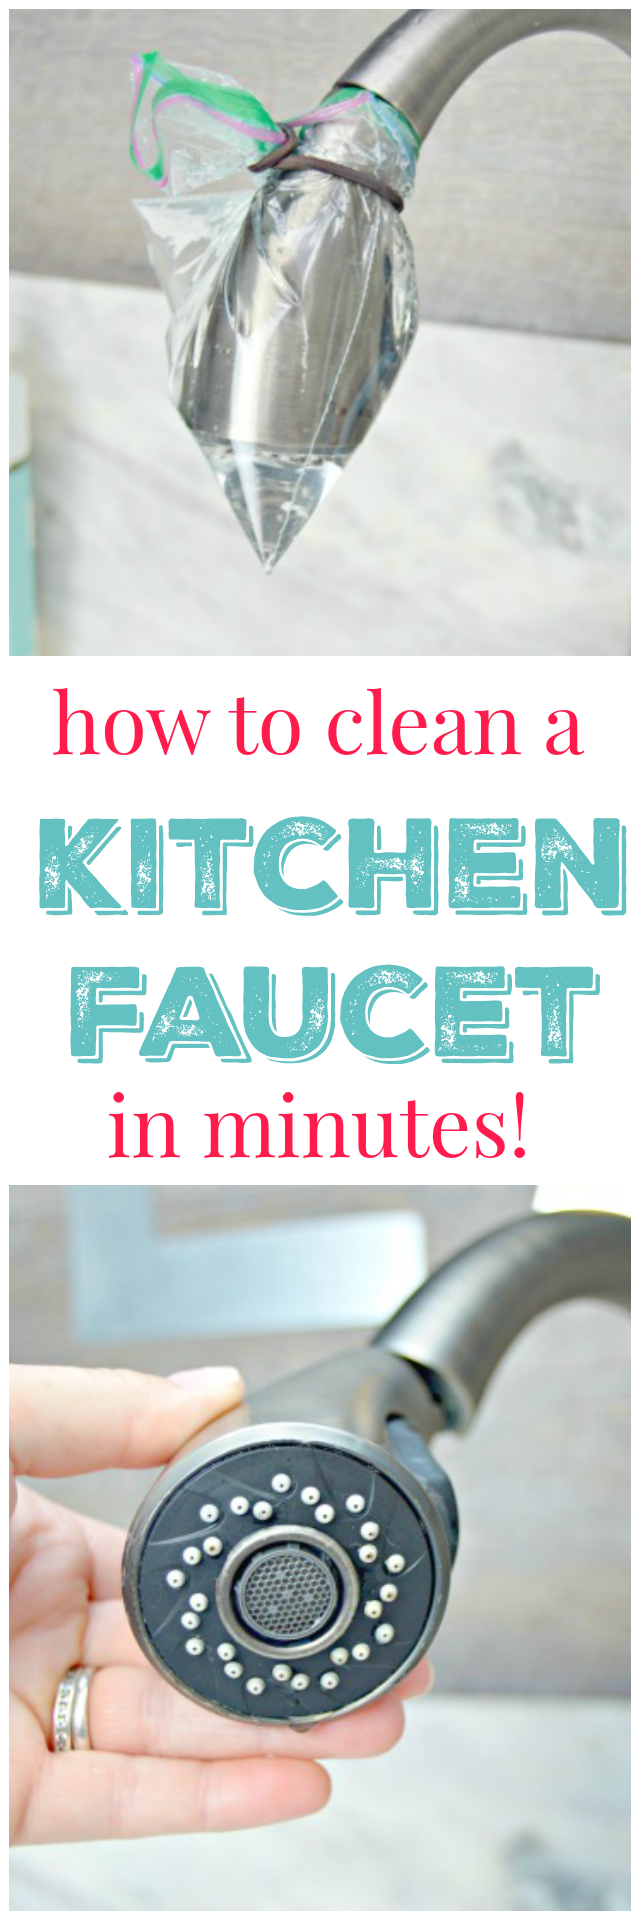 how-to-clean-kitchen-faucet